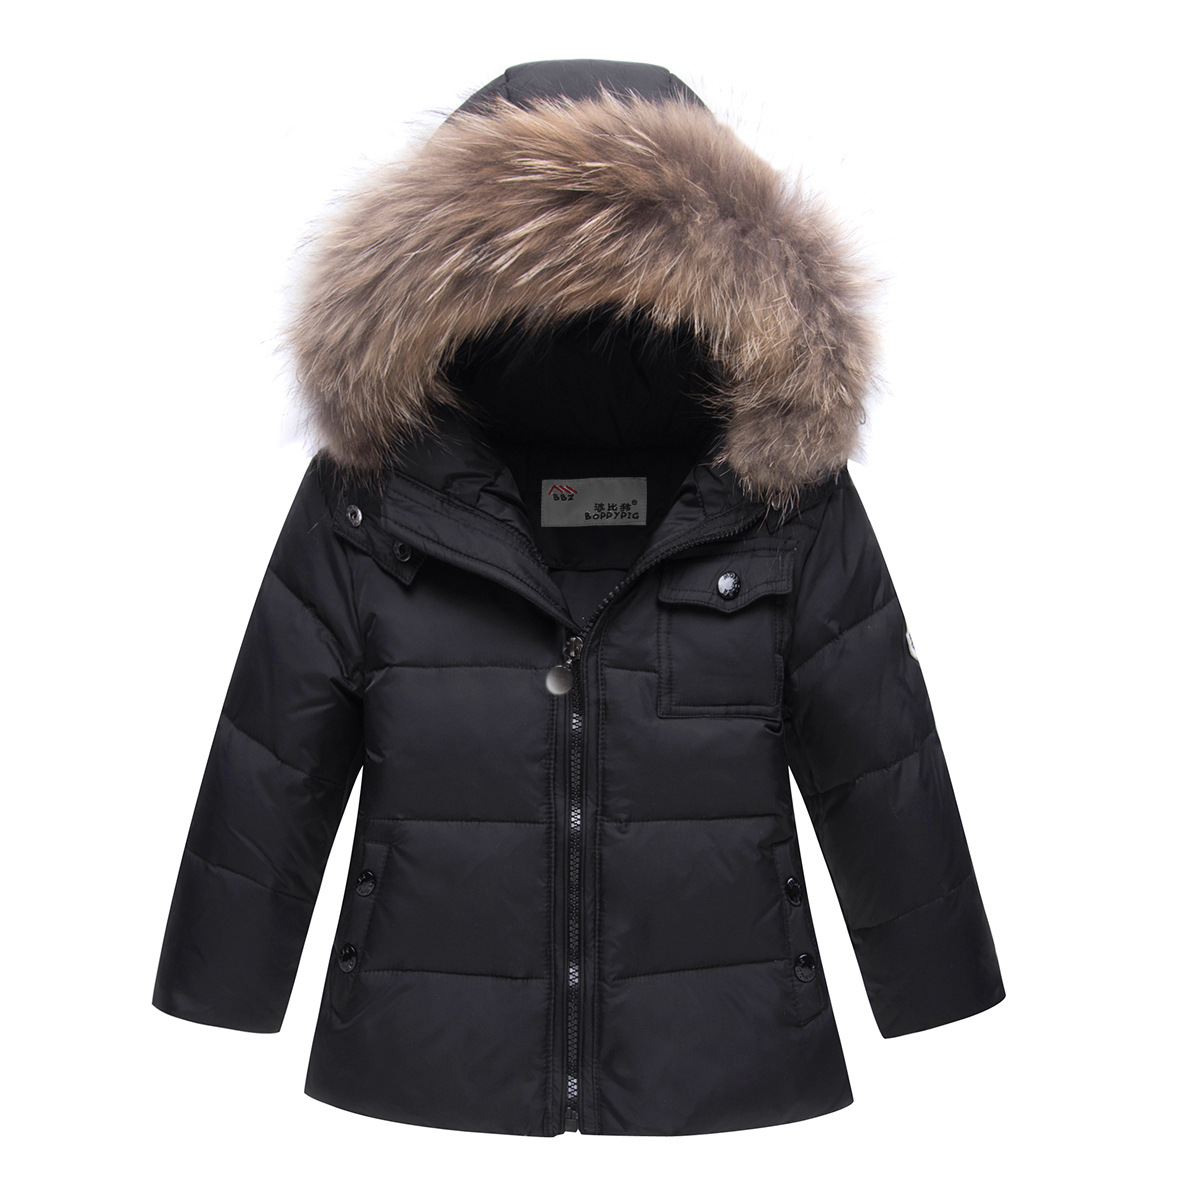 b26f6cd79f8 Russian Winter Suits for Boys Girls 2019 Ski Suit Children Clothing Set  Baby Duck Down Jacket Coat + Overalls Warm Kids Snowsuit